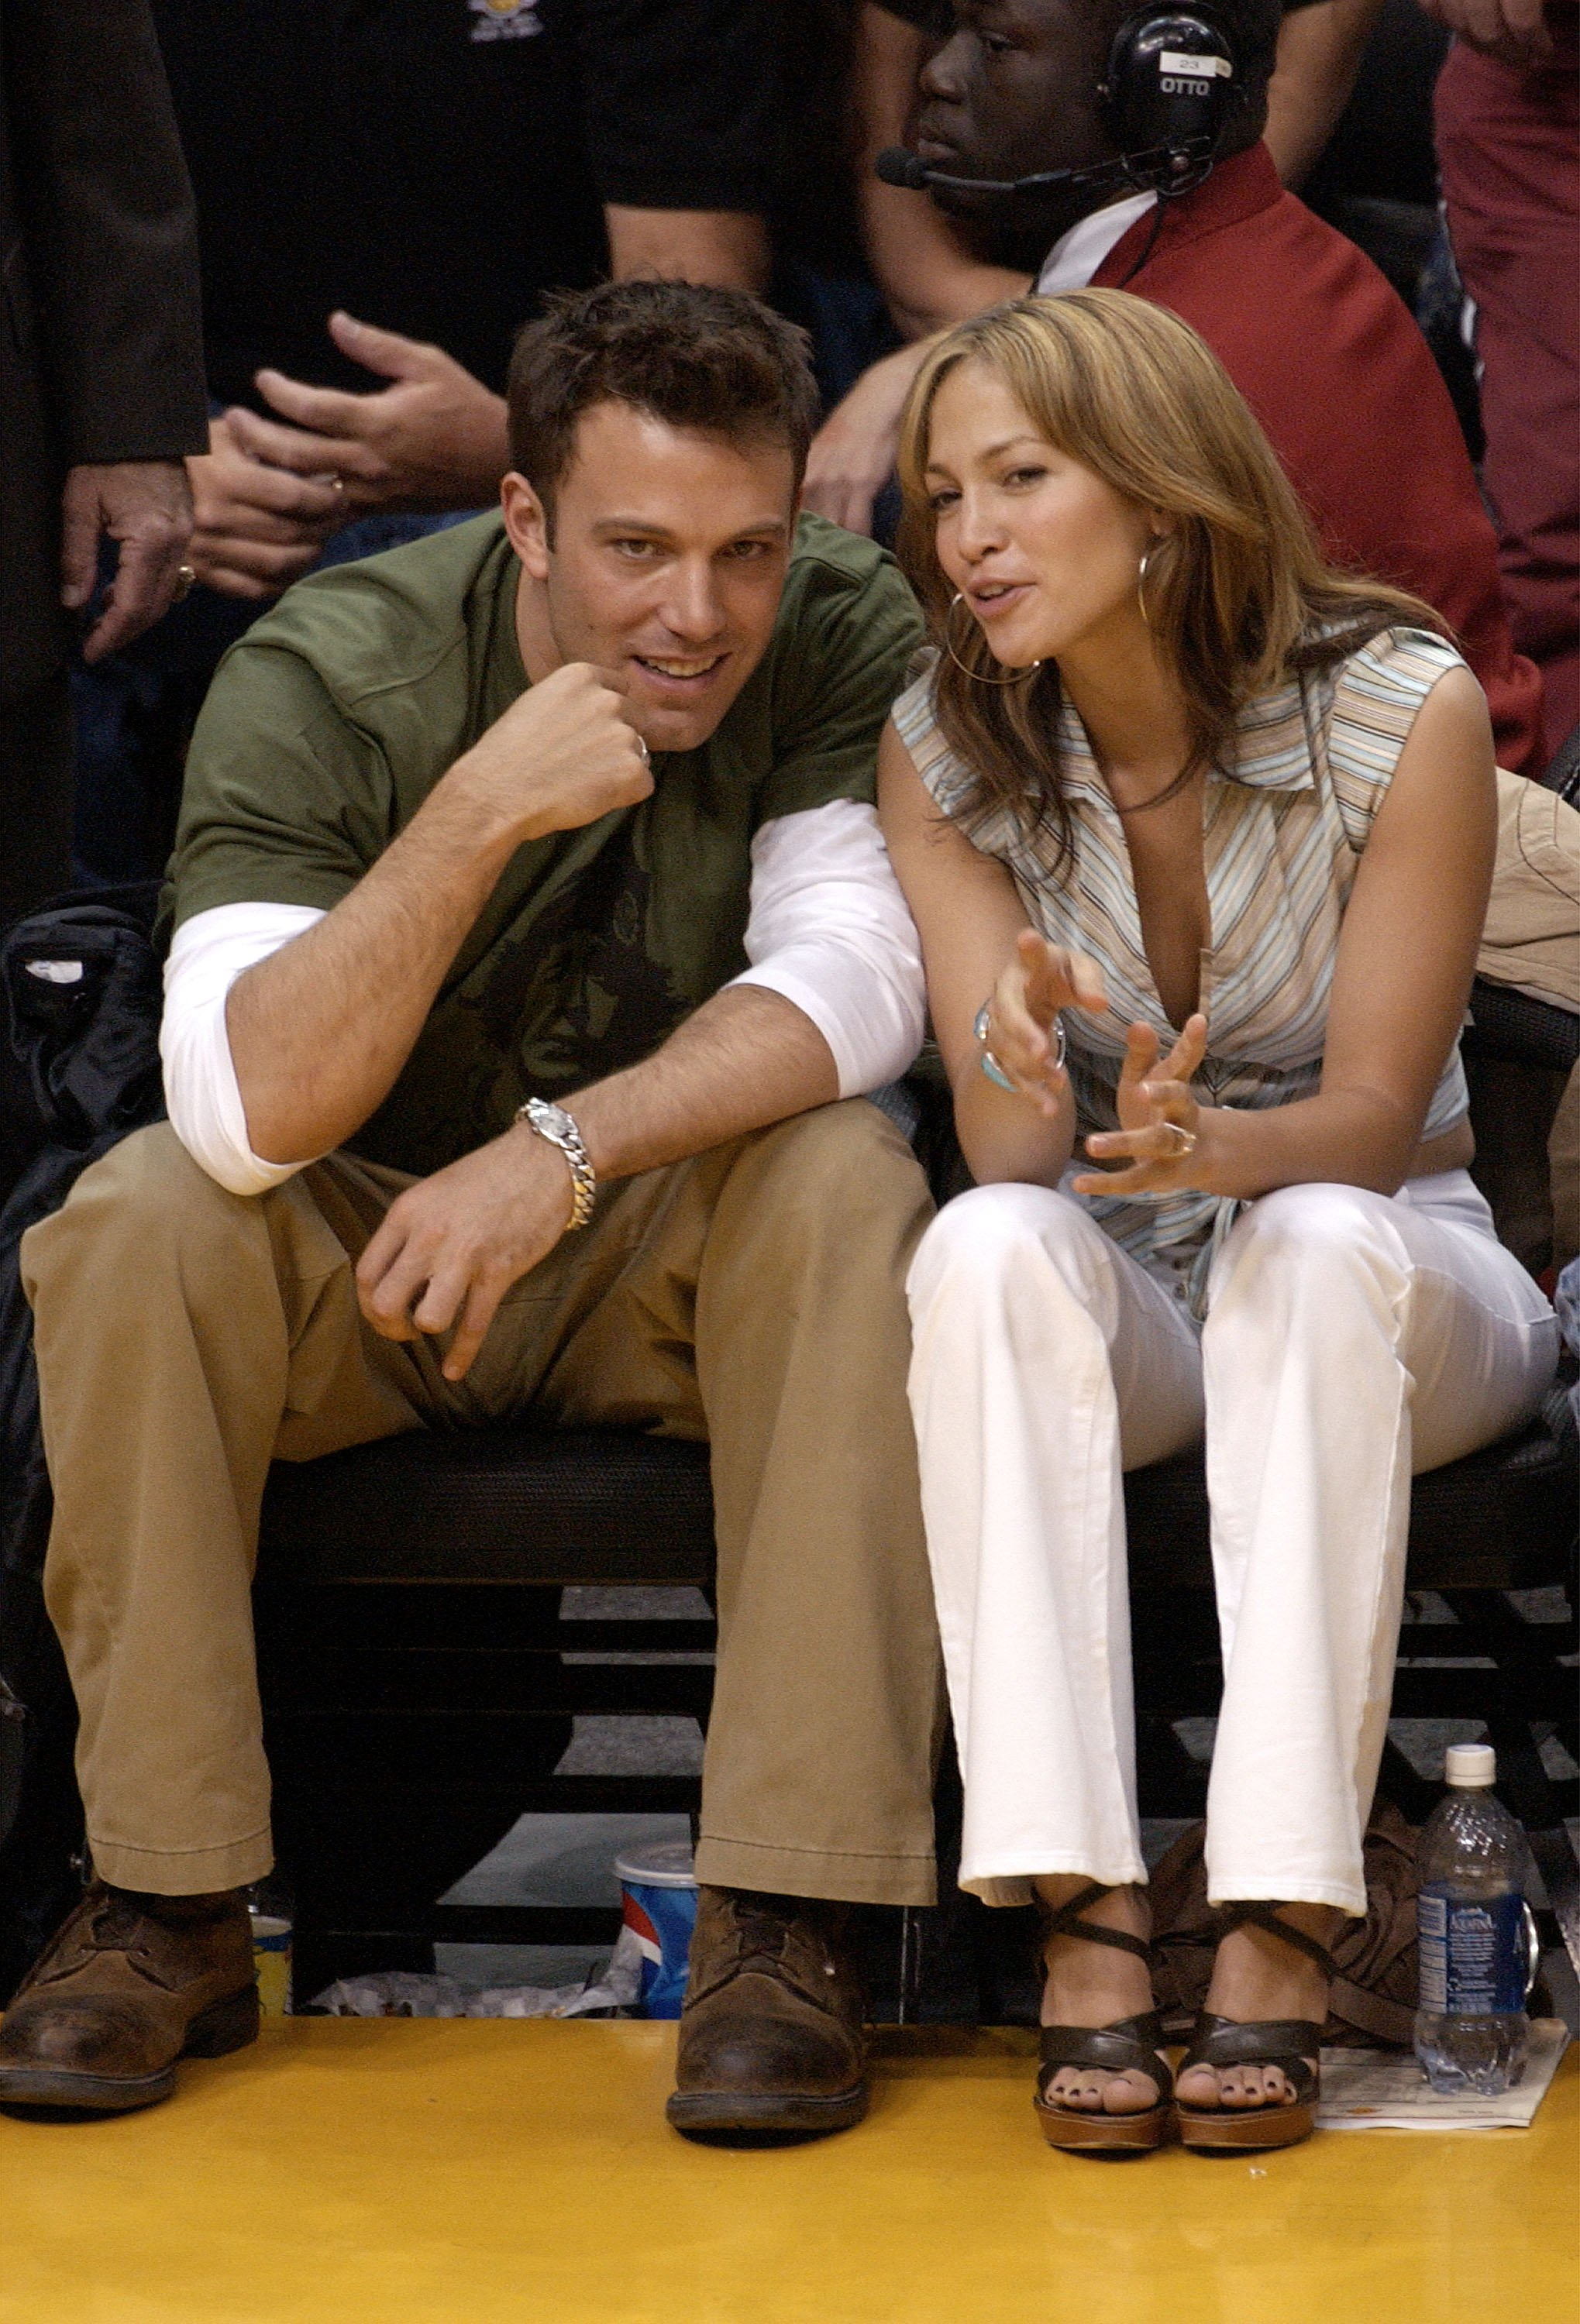 An undated image of Ben Affleck and Jennifer Lopez smiling while conversing | Photo: Getty Images